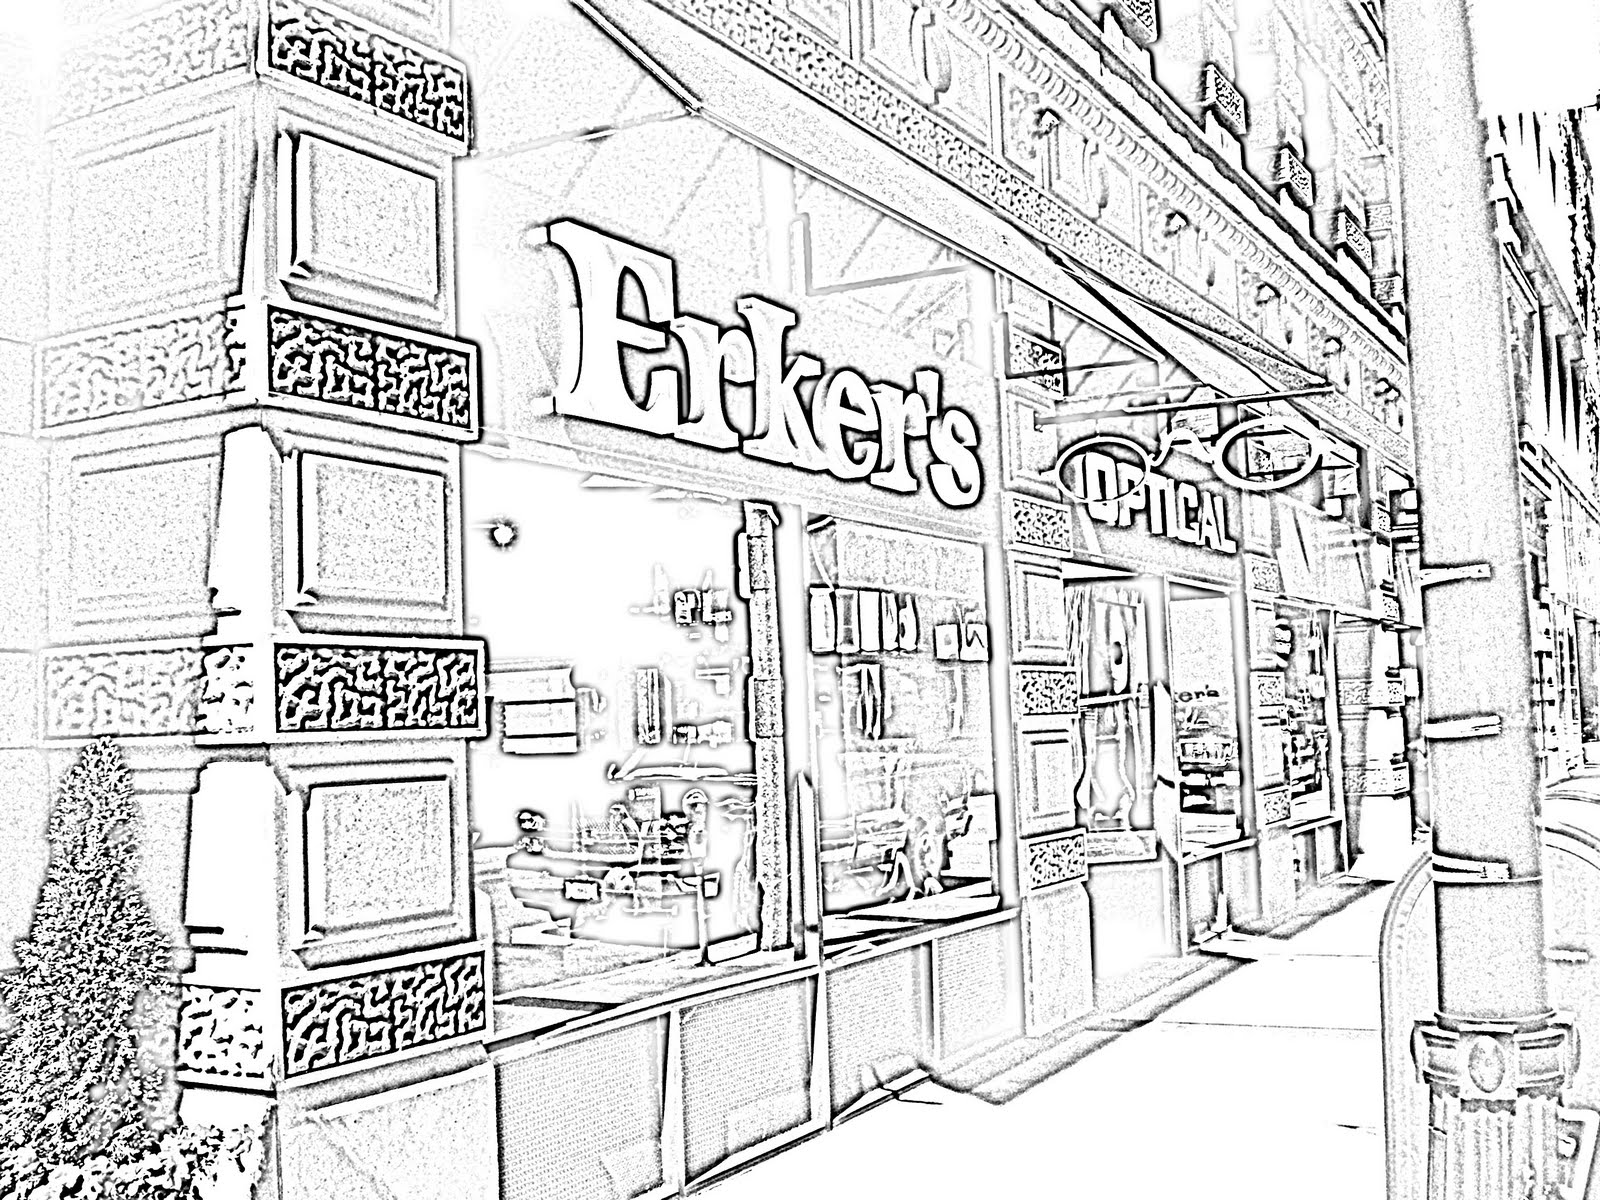 1600x1200 Erkers Fine Eyewear Come Downtown To See The New Erker's Store